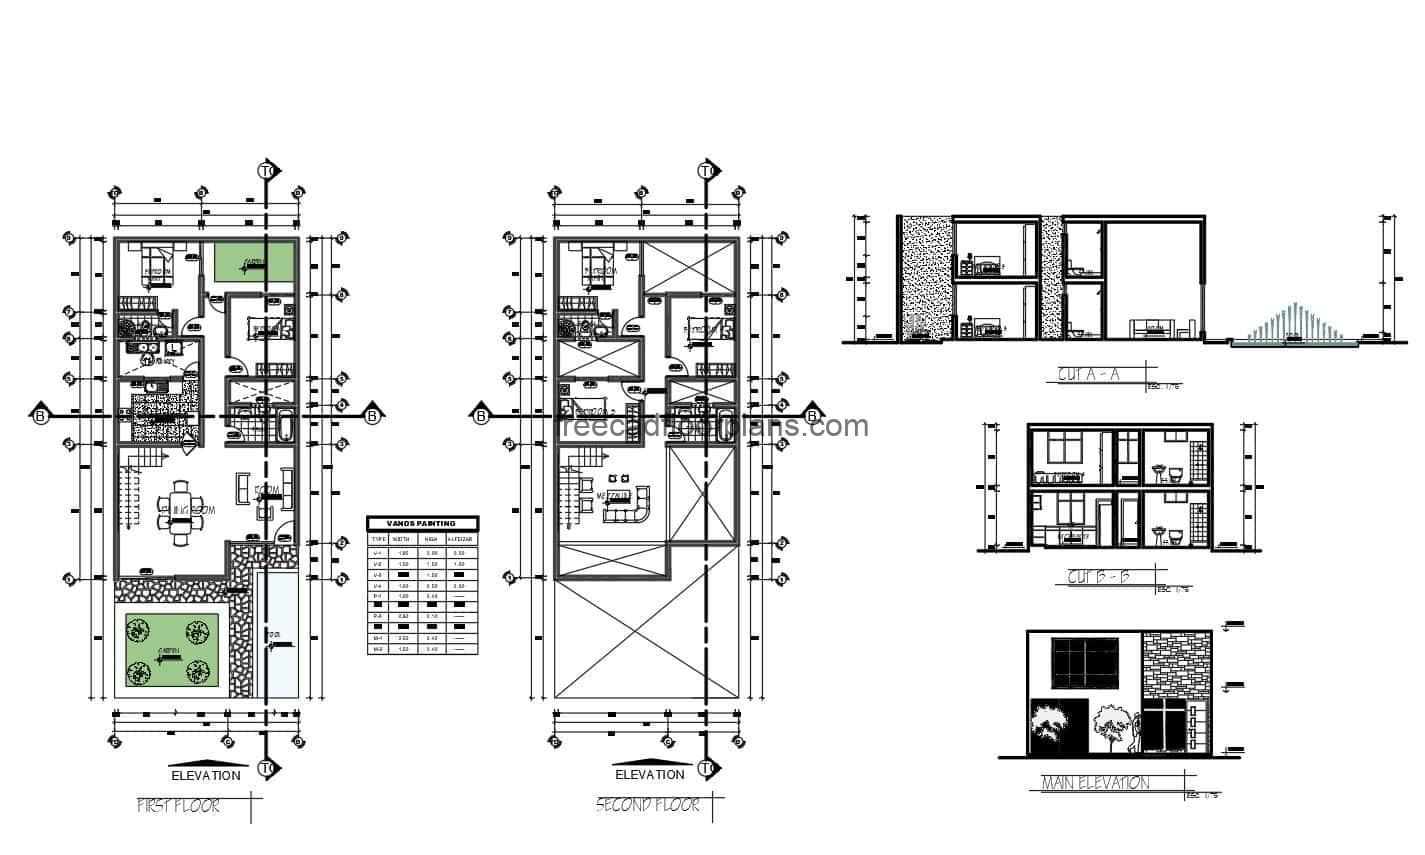 2D drawing in DWG format of architectural plan of a simple house with front and back gardens of five rooms in total, two rooms for each level, on the first level living room, kitchen, dining room, laundry area and two bedrooms. Second level, three bedrooms, family room and two bathrooms. Floor plans for free download, dimensioned floor plan with elevations and sec